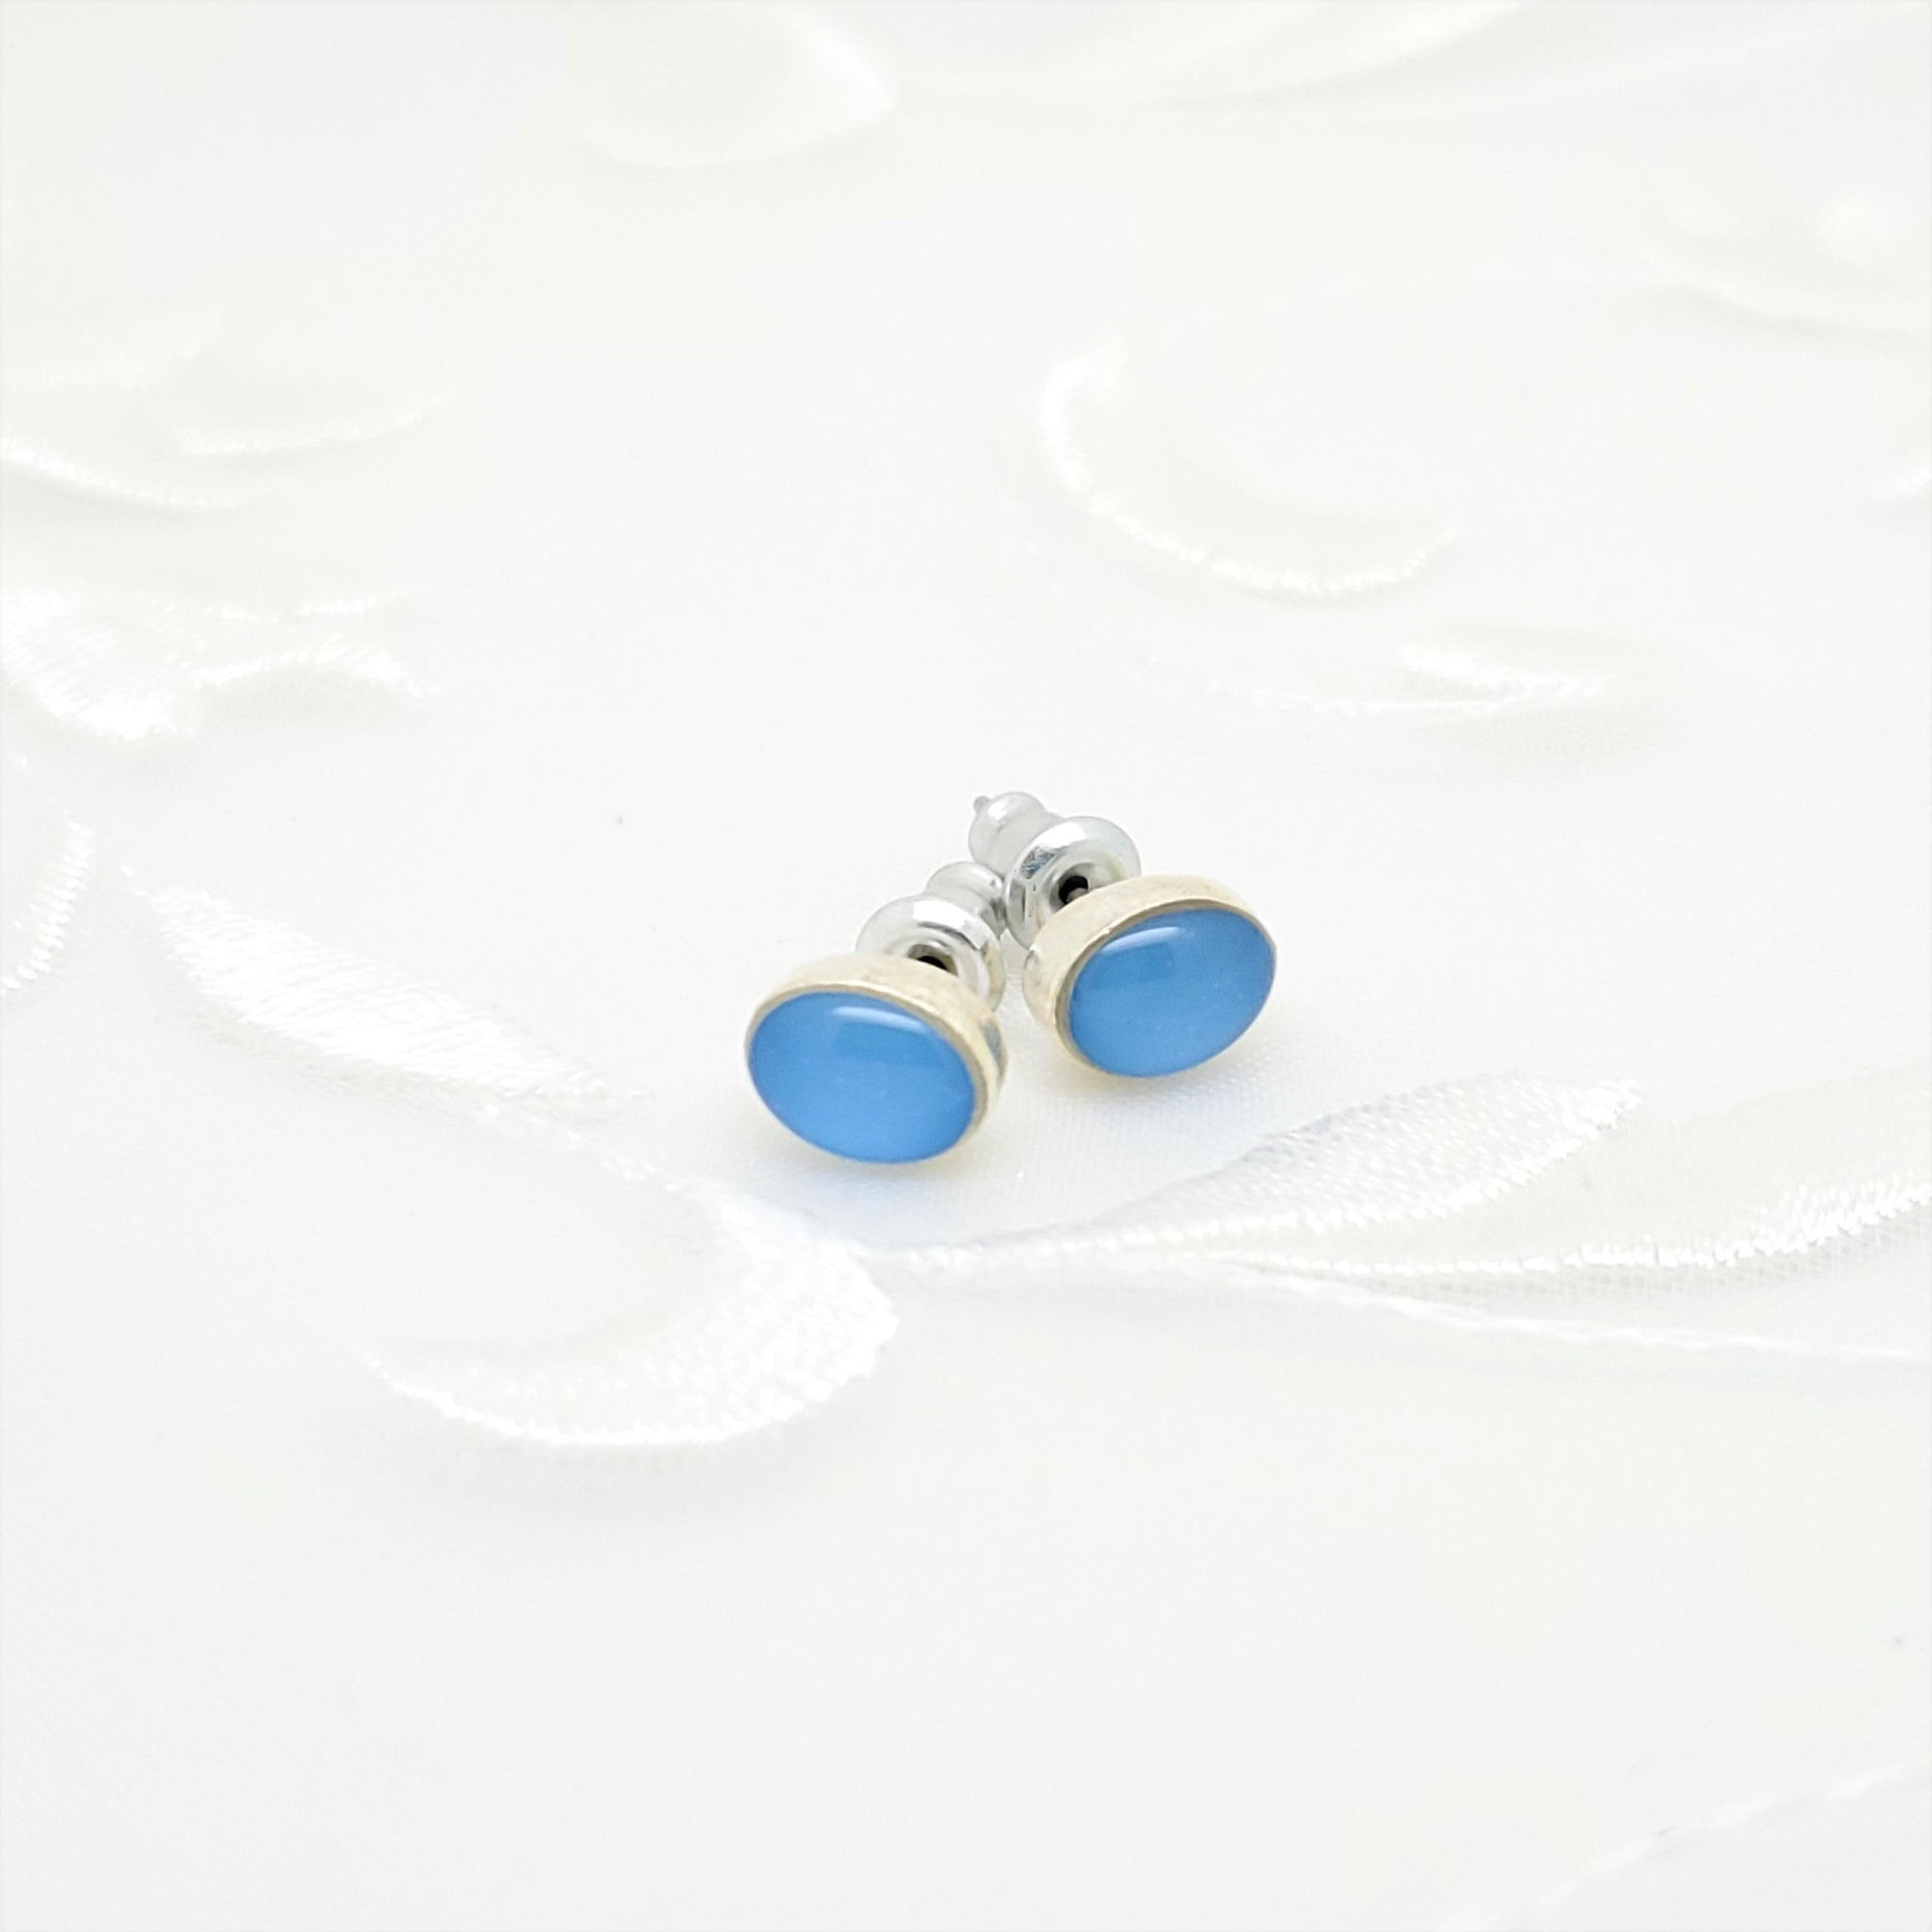 Antique Silver Oval Stud Earrings with Carolina Blue Resin